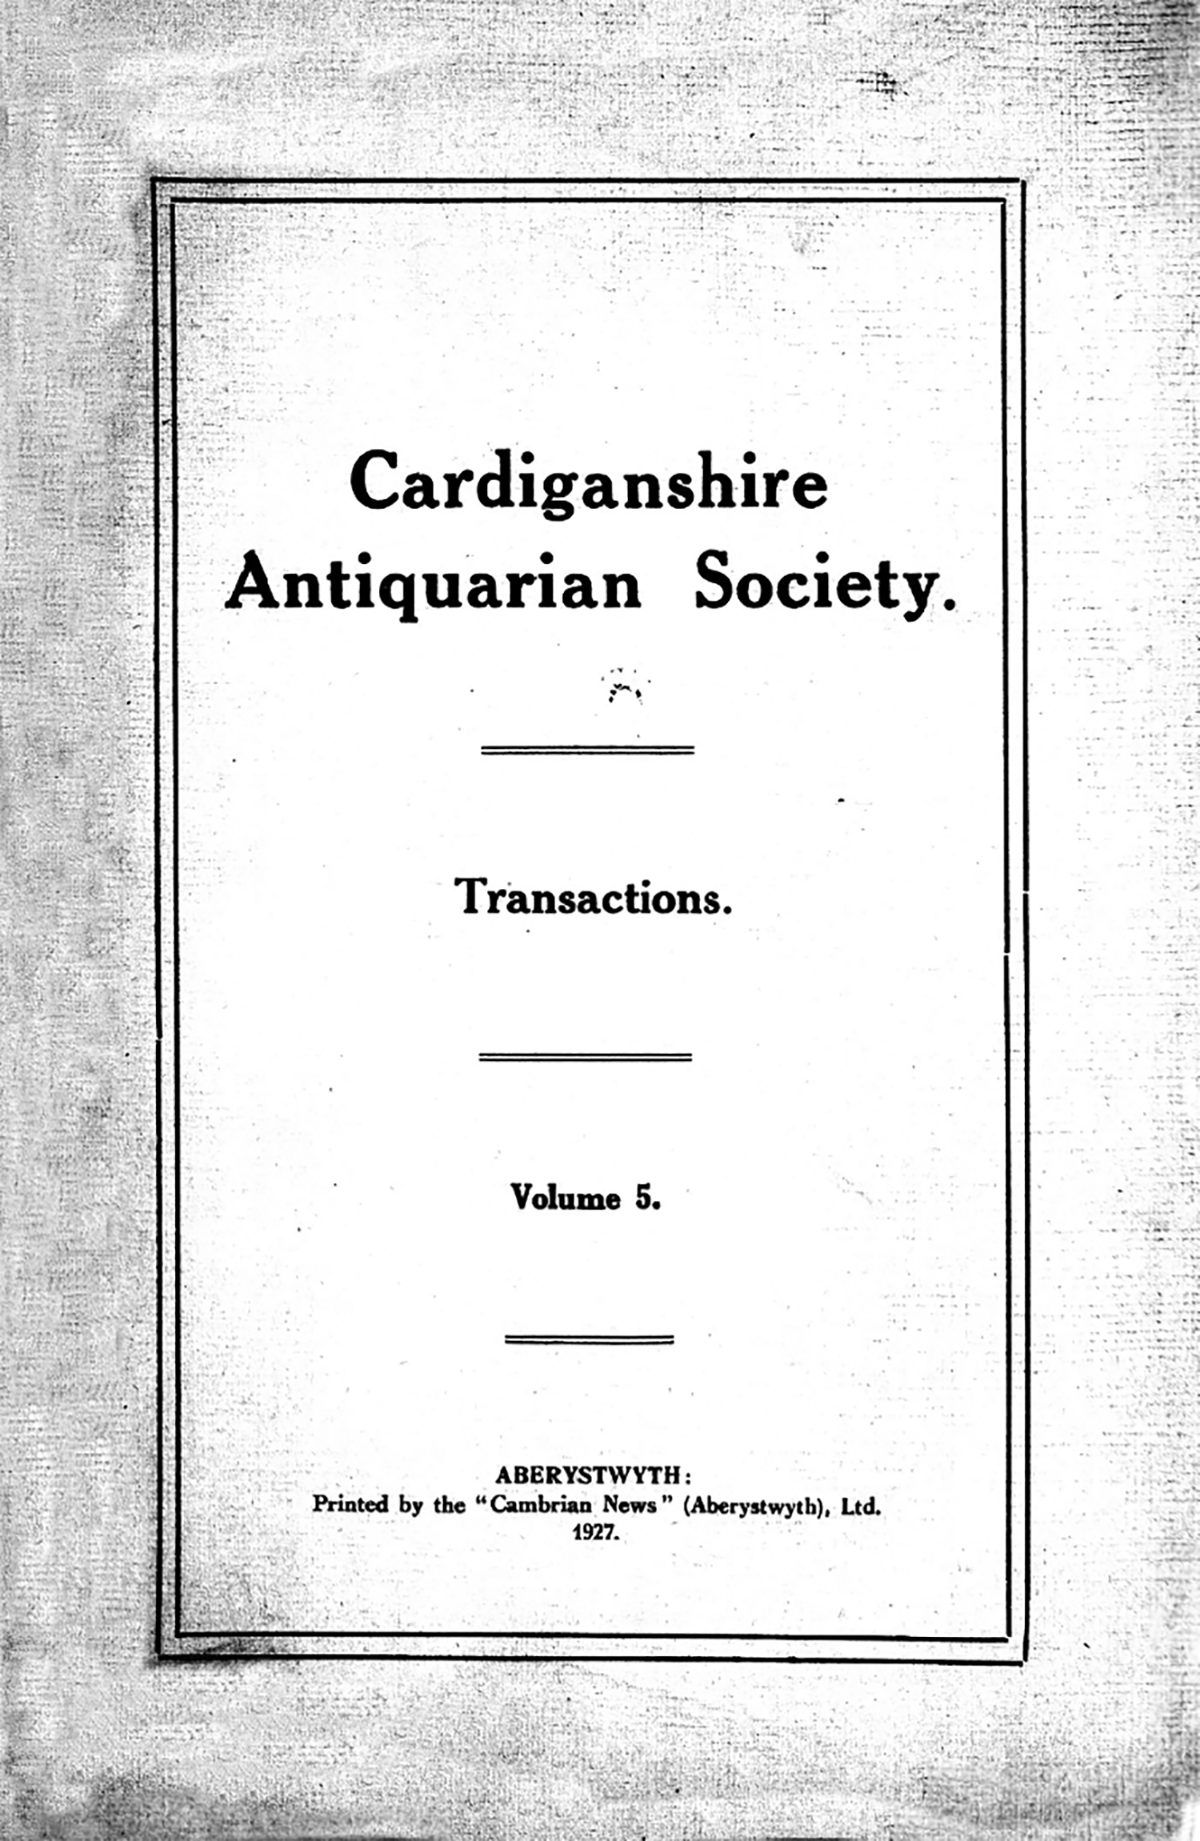 Transactions of the Cardiganshire Antiquarian Society and archaeological Record - Volume 5